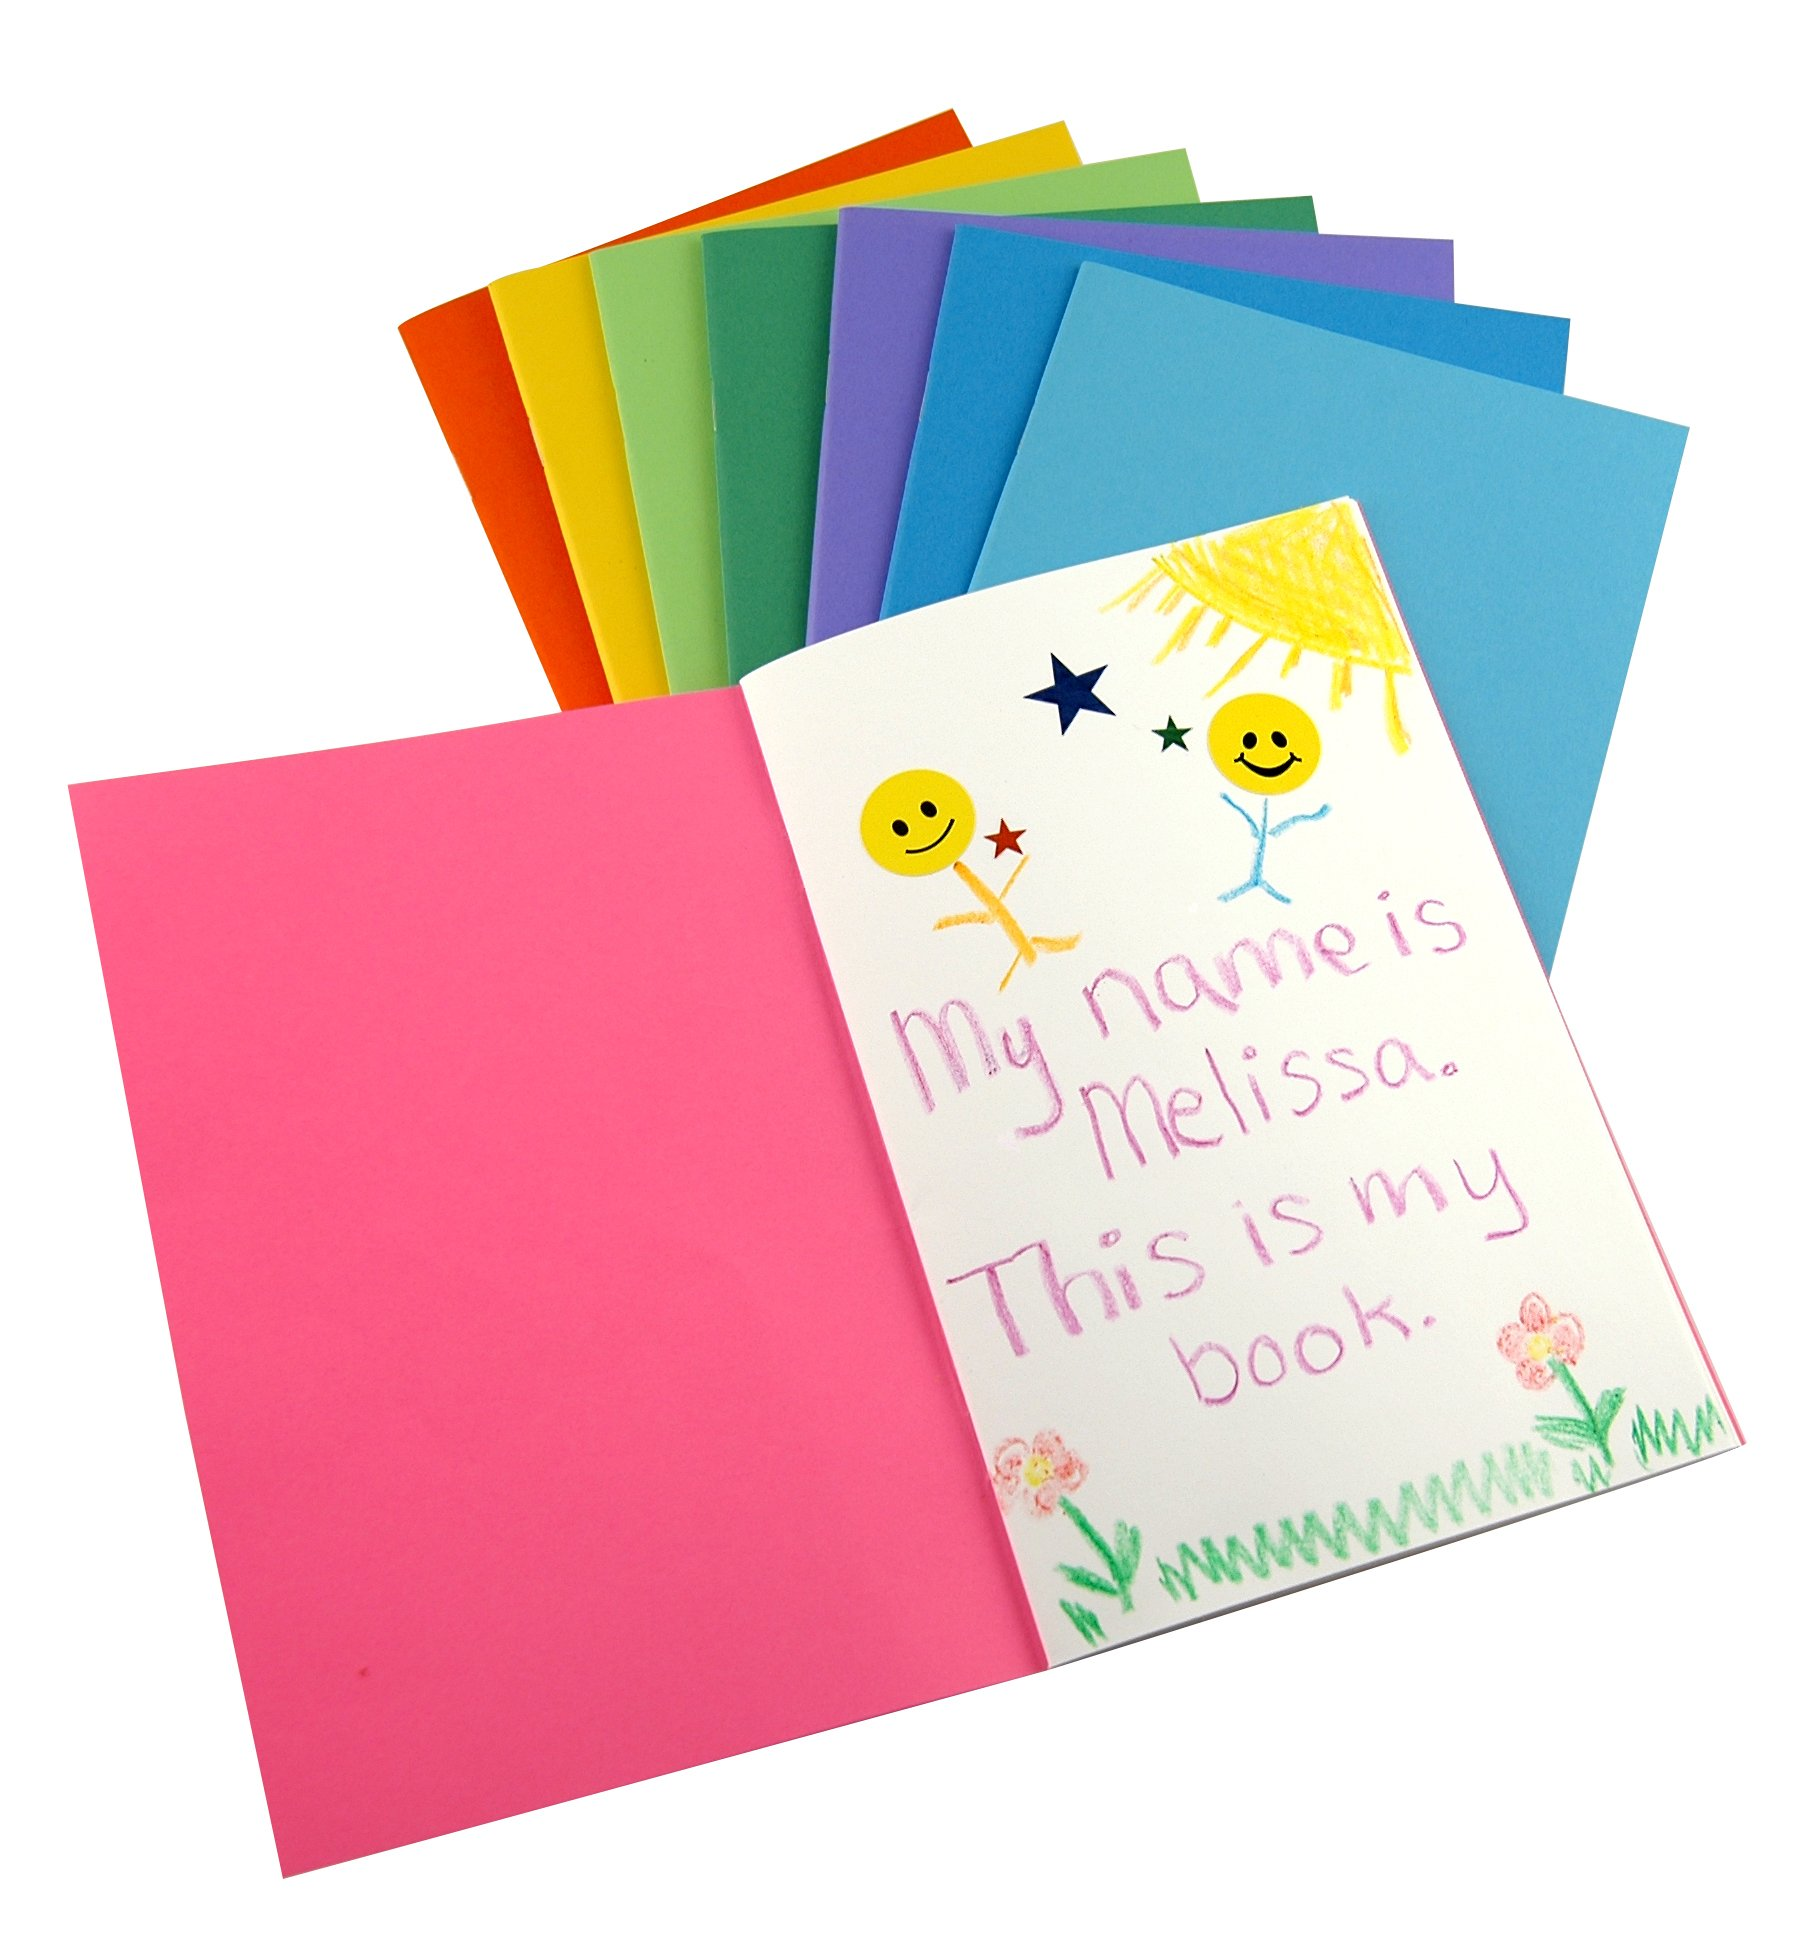 Hygloss Products, Inc Paperback Blank Sketch, Writing, Journaling, Book for Children and Adults Pack of 50 in Assorted Colors, 4.25 x 5.5-Inch, 4.25 x 5.5-Inch